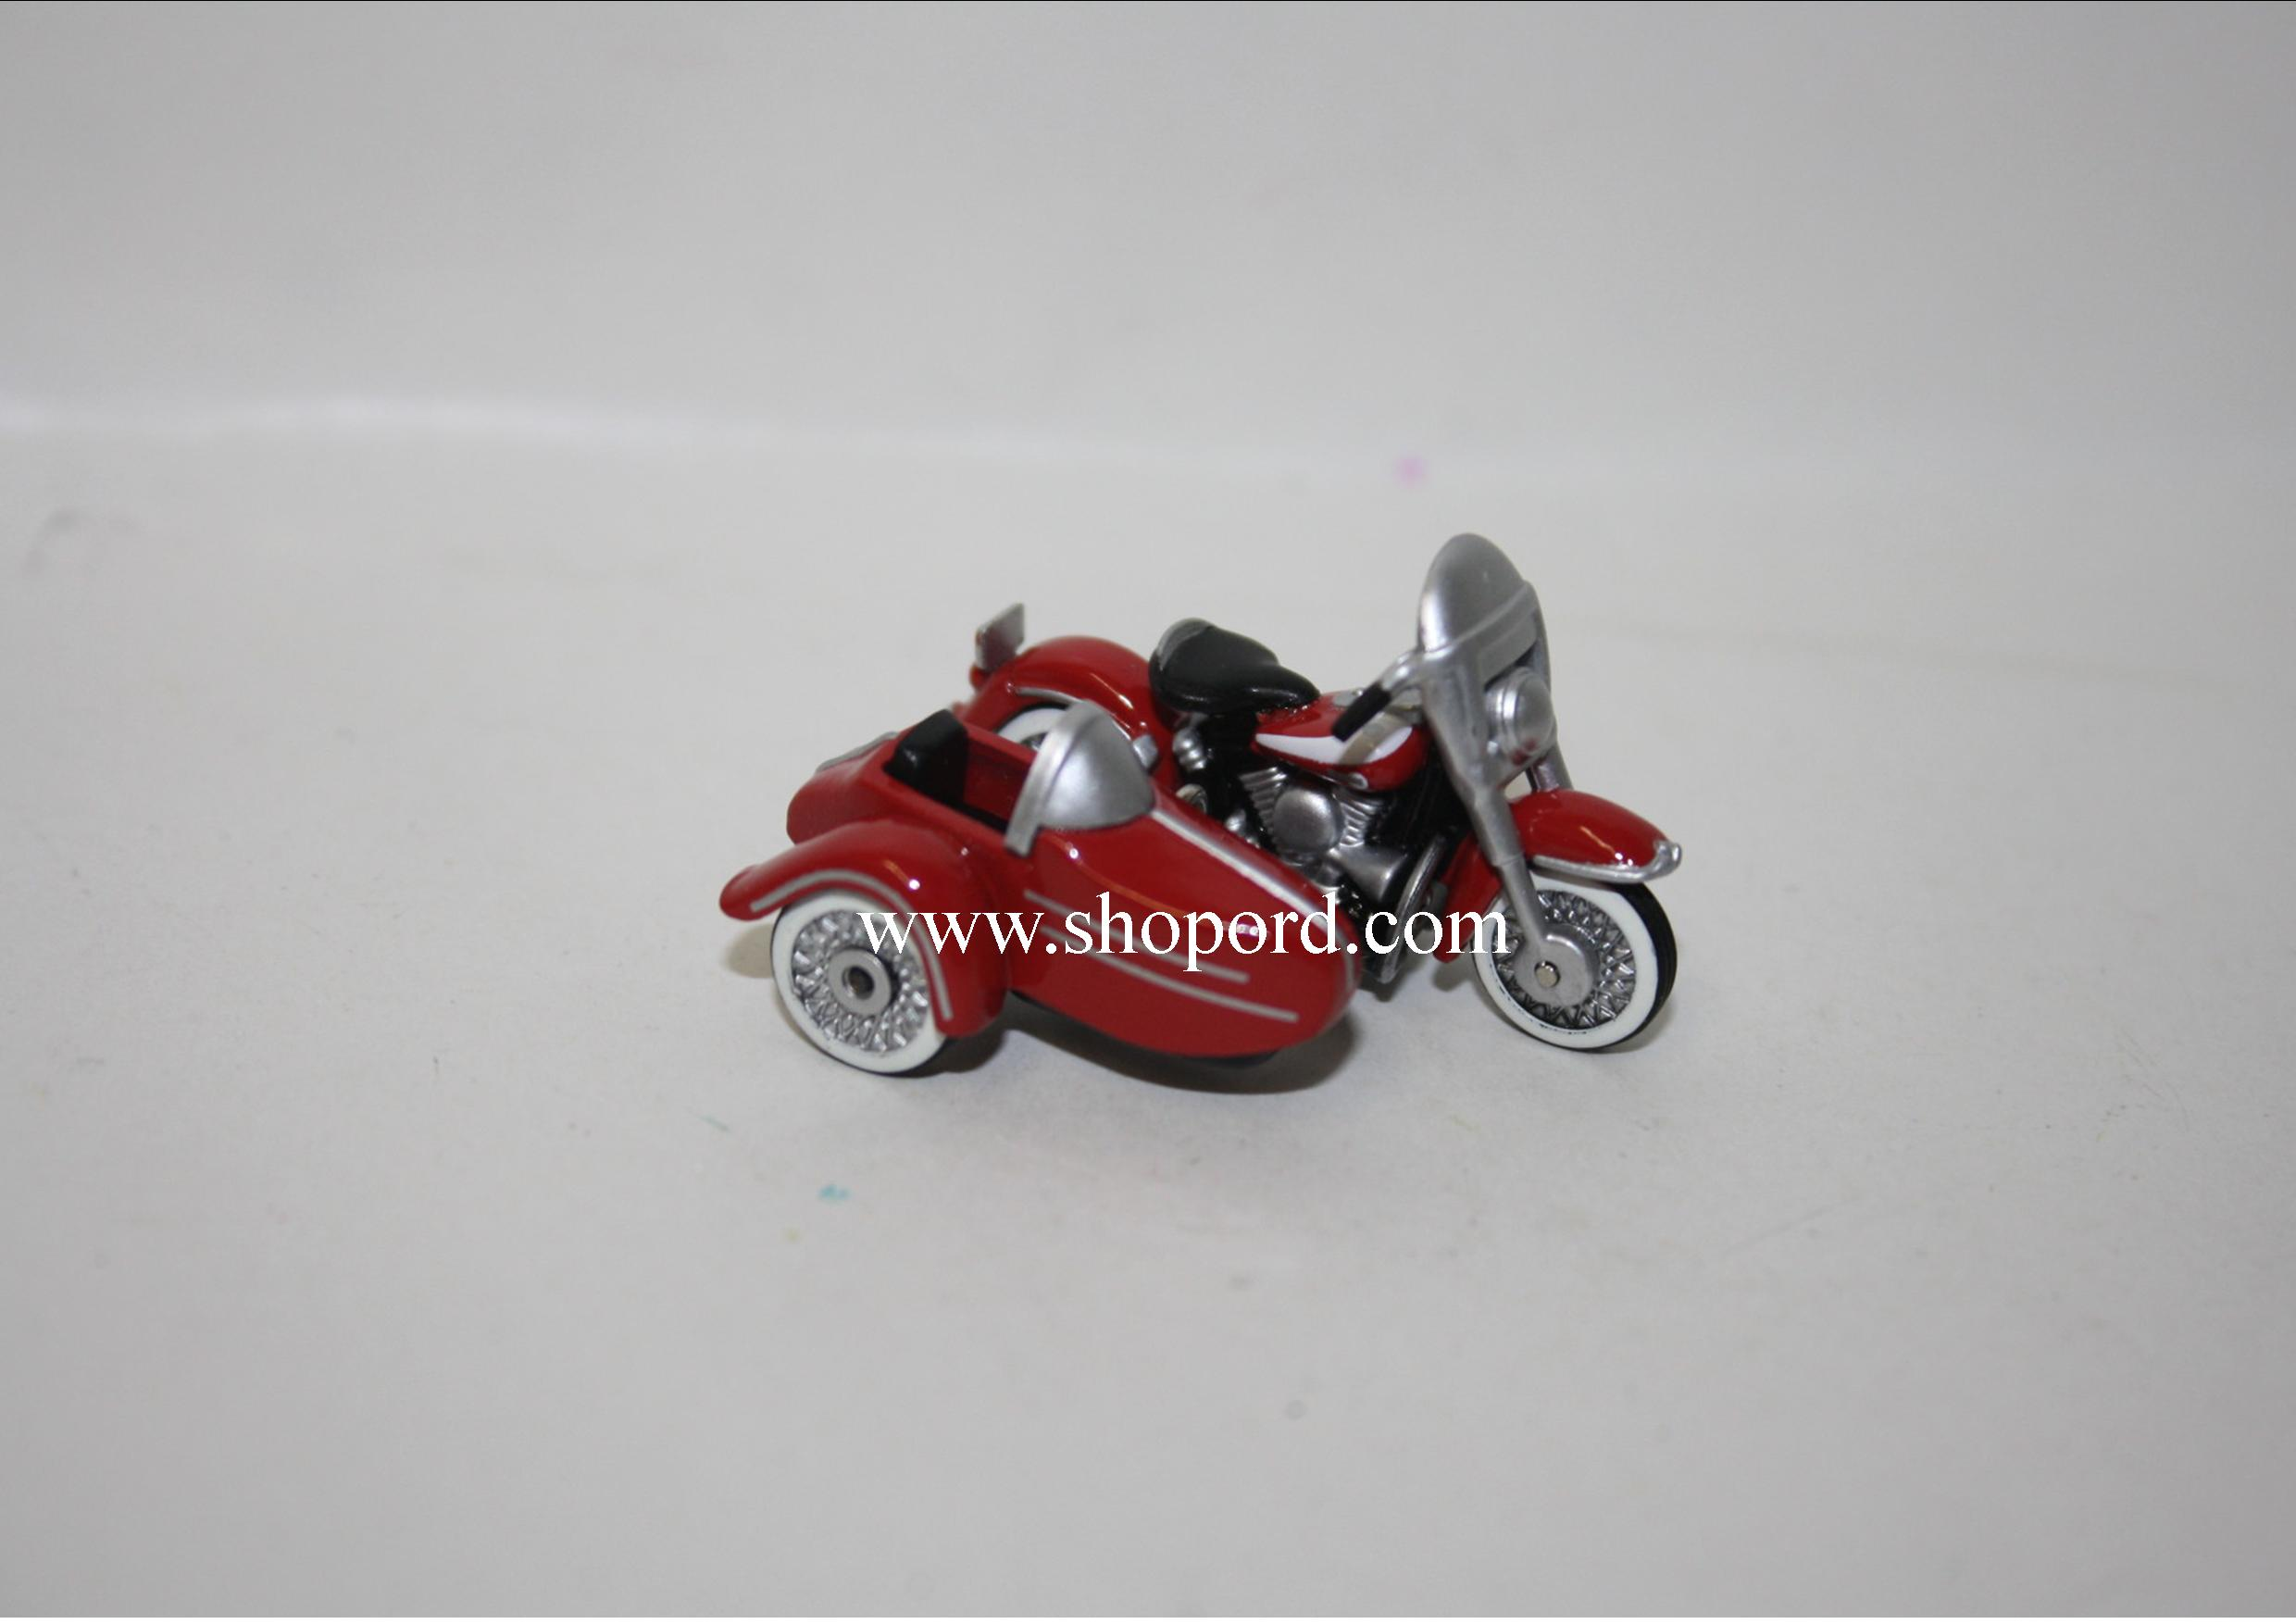 Hallmark 2000 Duo Glide 1962 Miniature Ornament  2nd In The Harley Davidson Motorcycles Series QXI6001